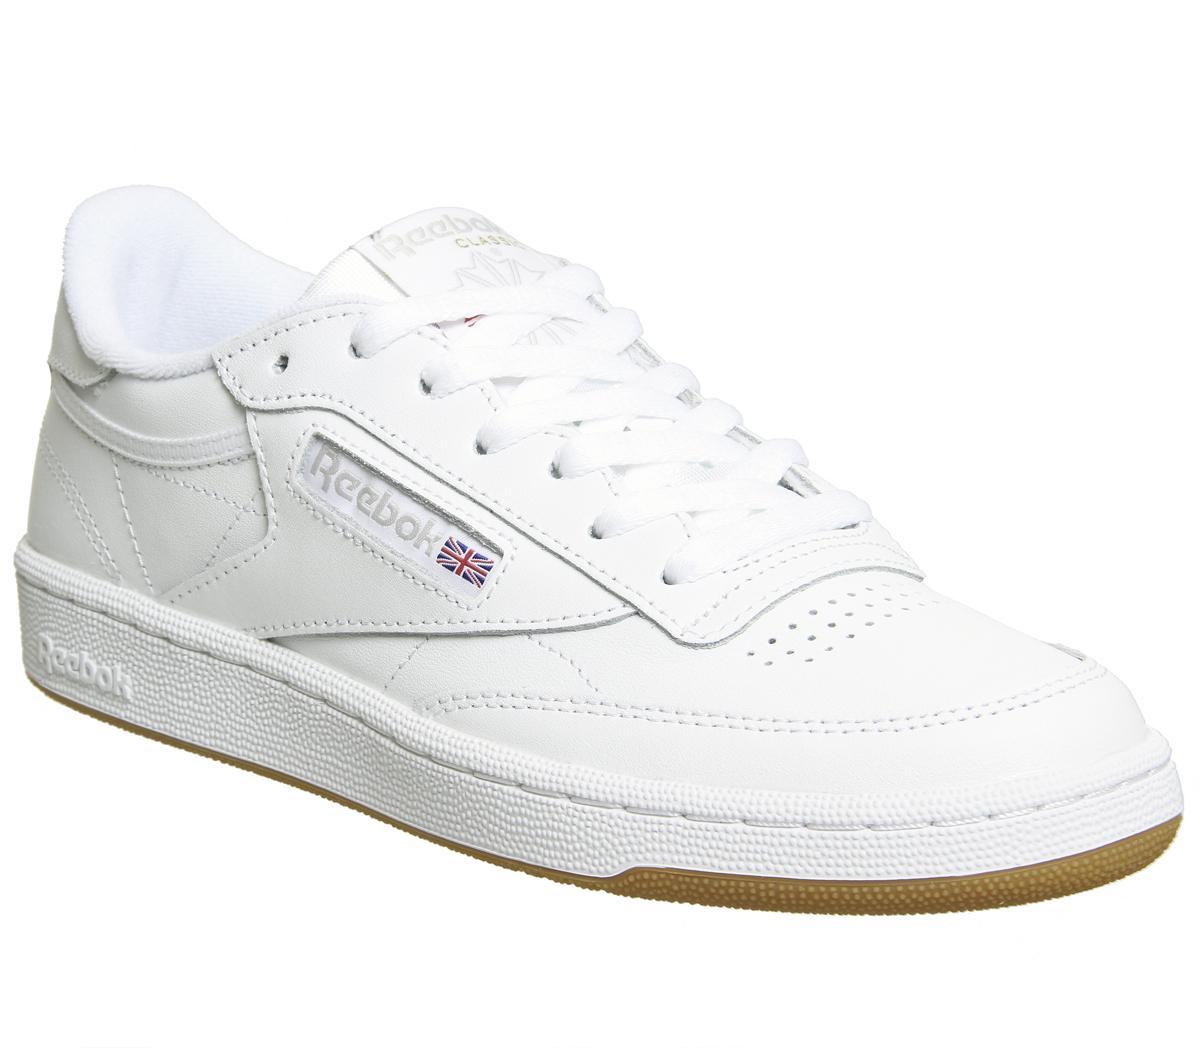 Club C 85 Trainers